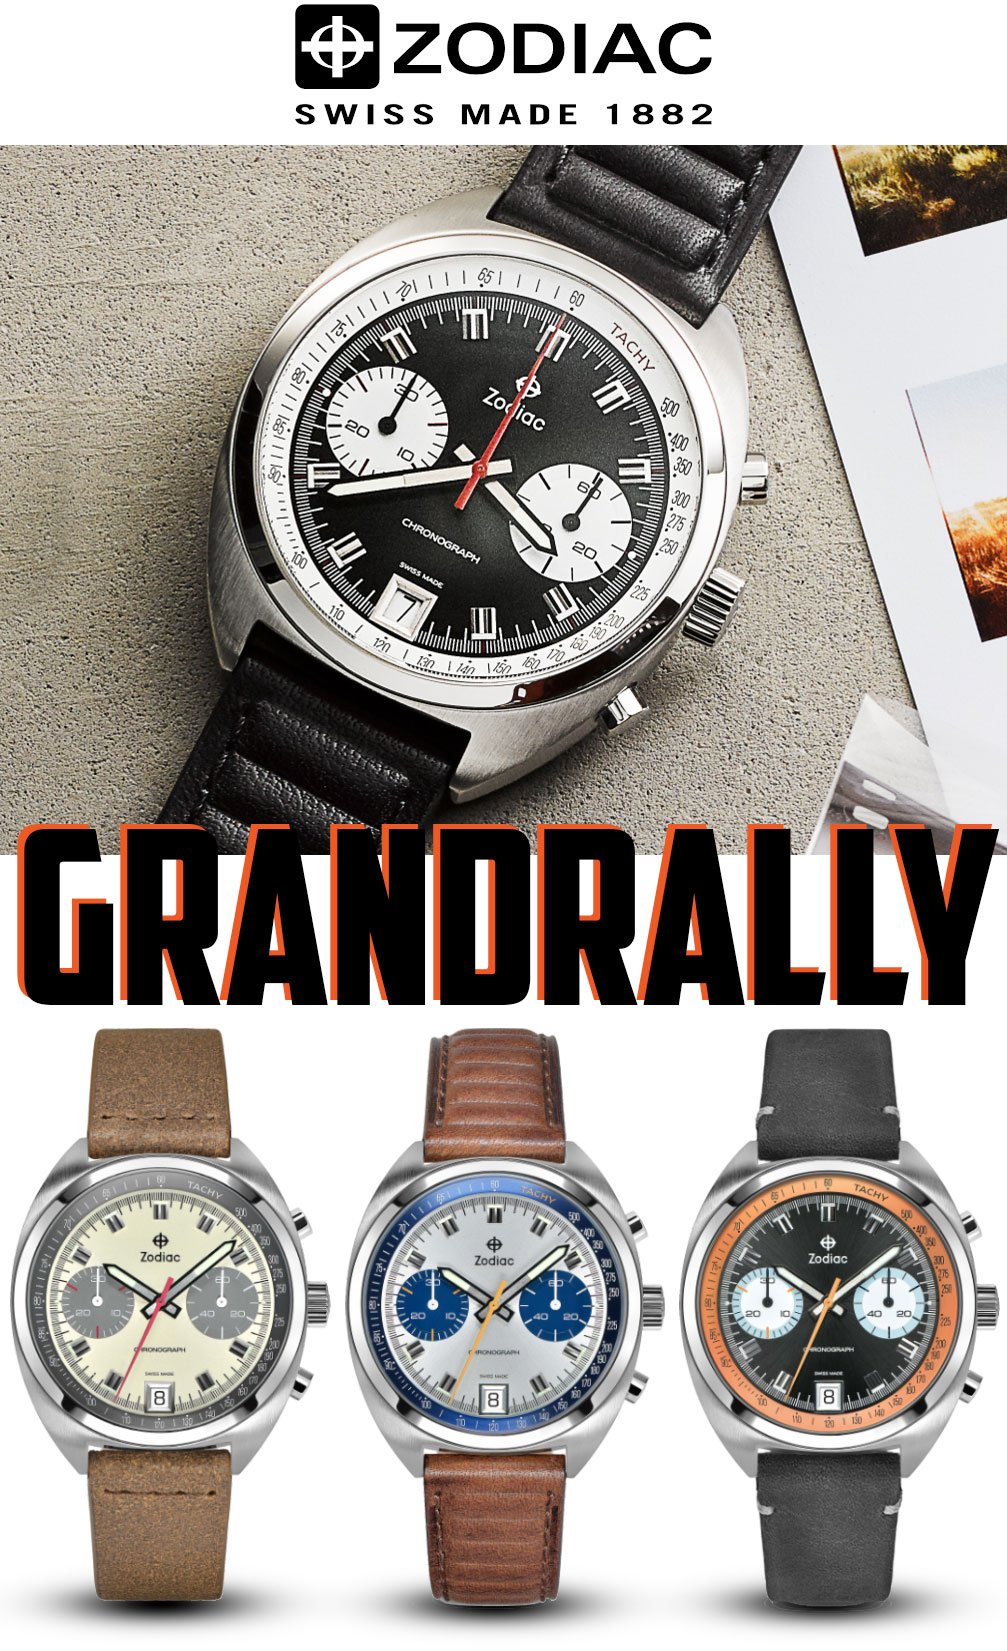 3e4f2a67b The new Zodiac is 41mm of retro awesomeness - WATCHES.COM Email Archive